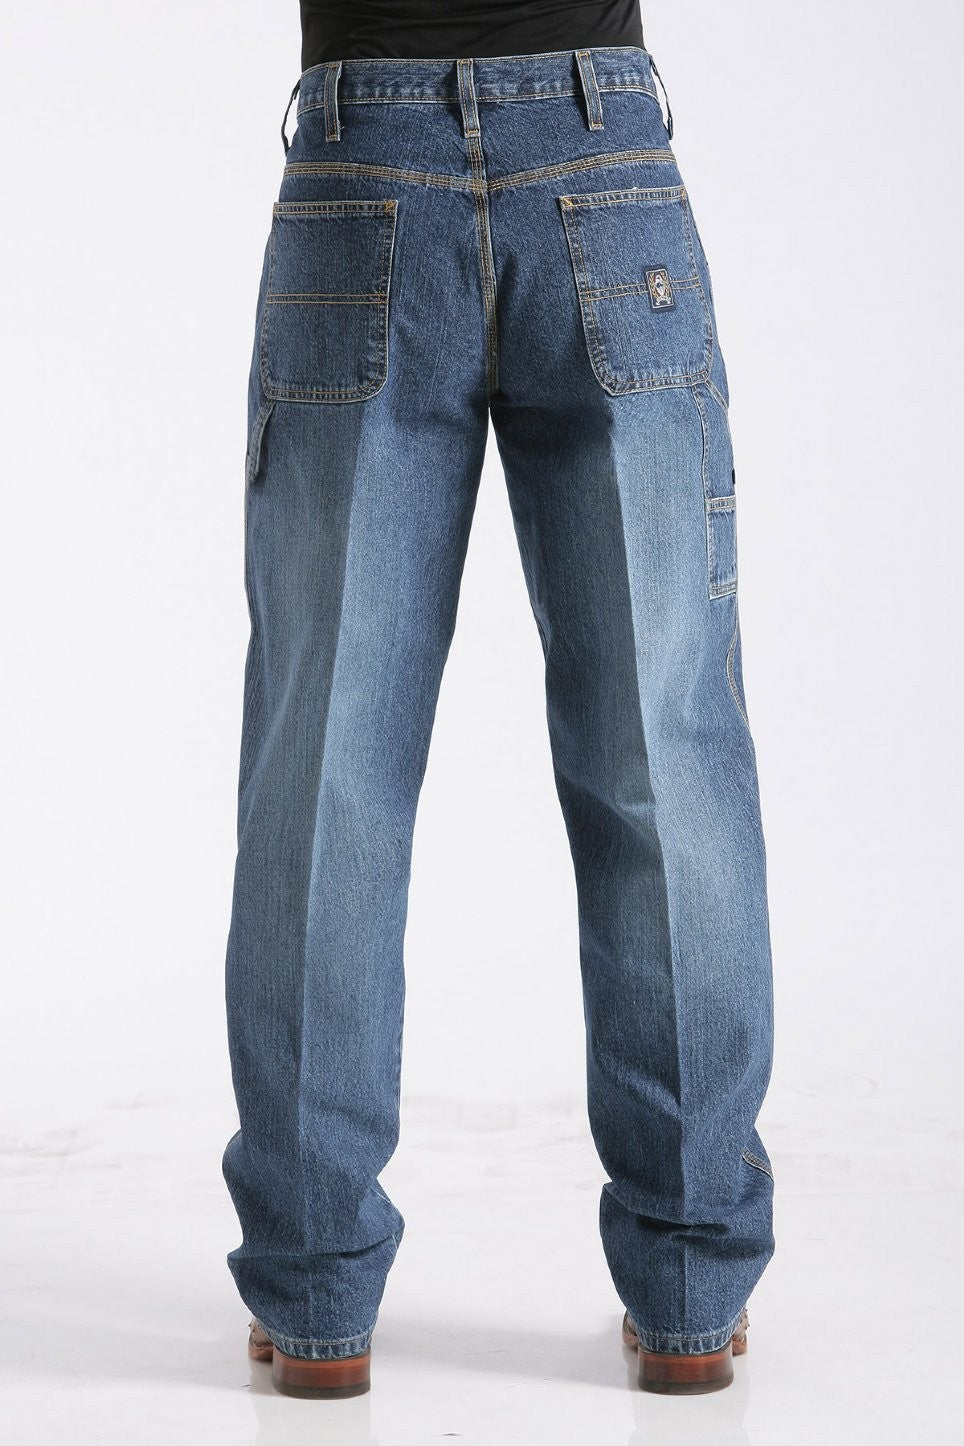 Cinch Blue Label Jean